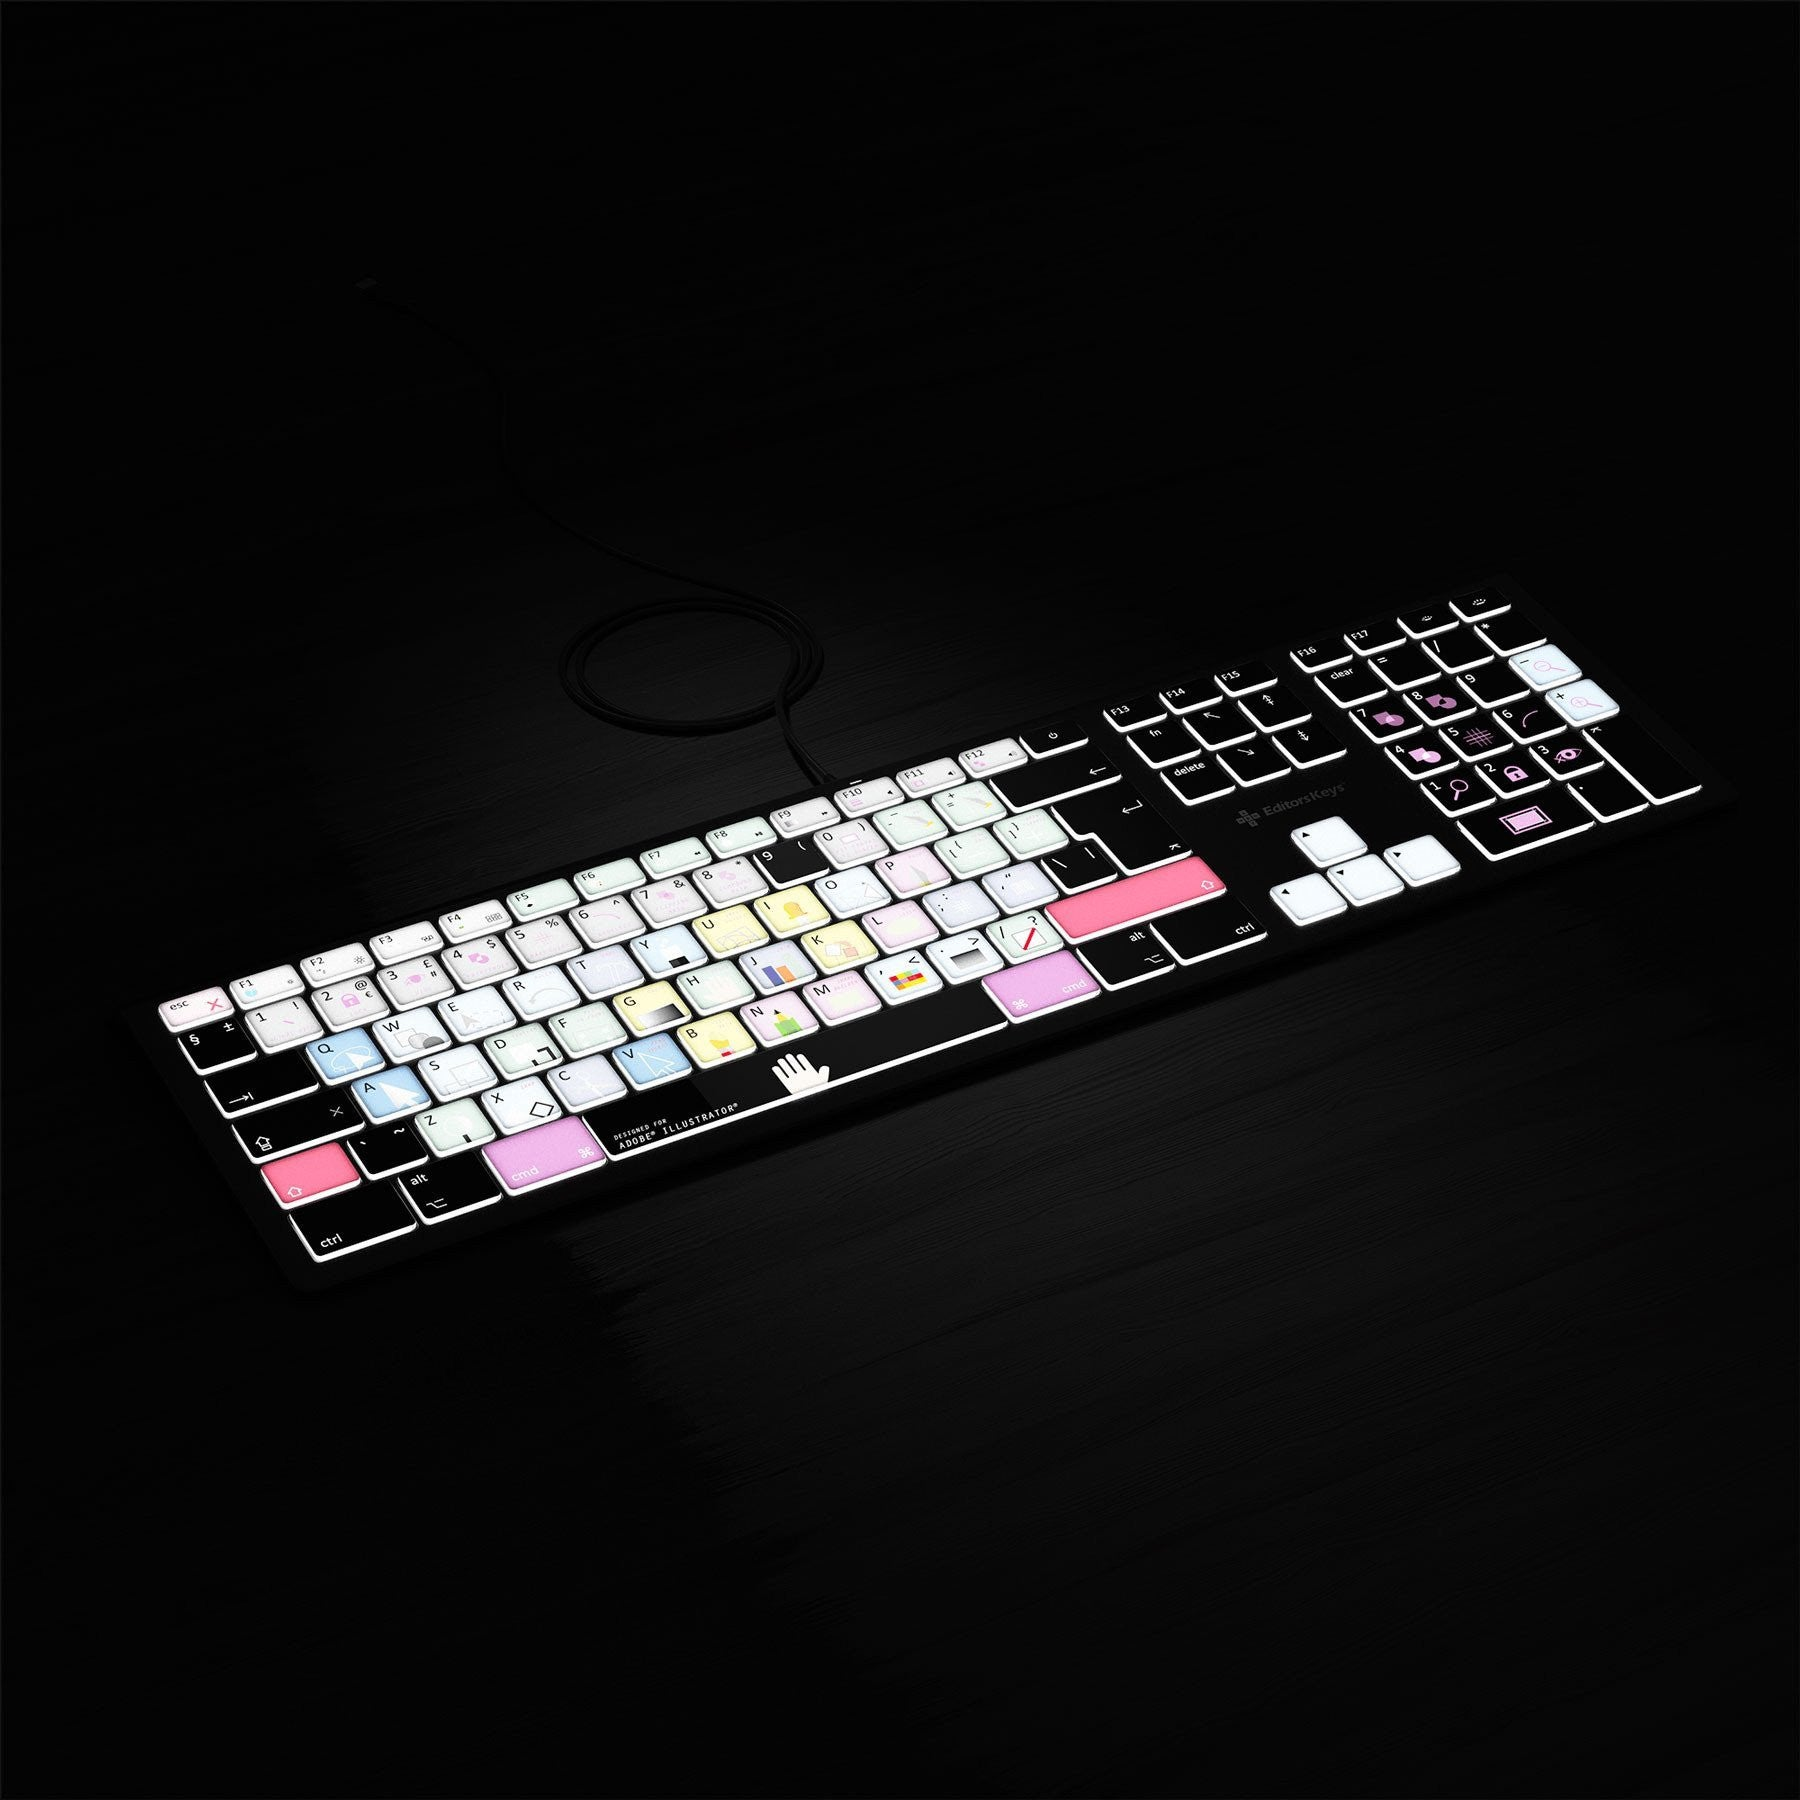 Adobe Illustrator Keyboard - Backlit Mac or PC